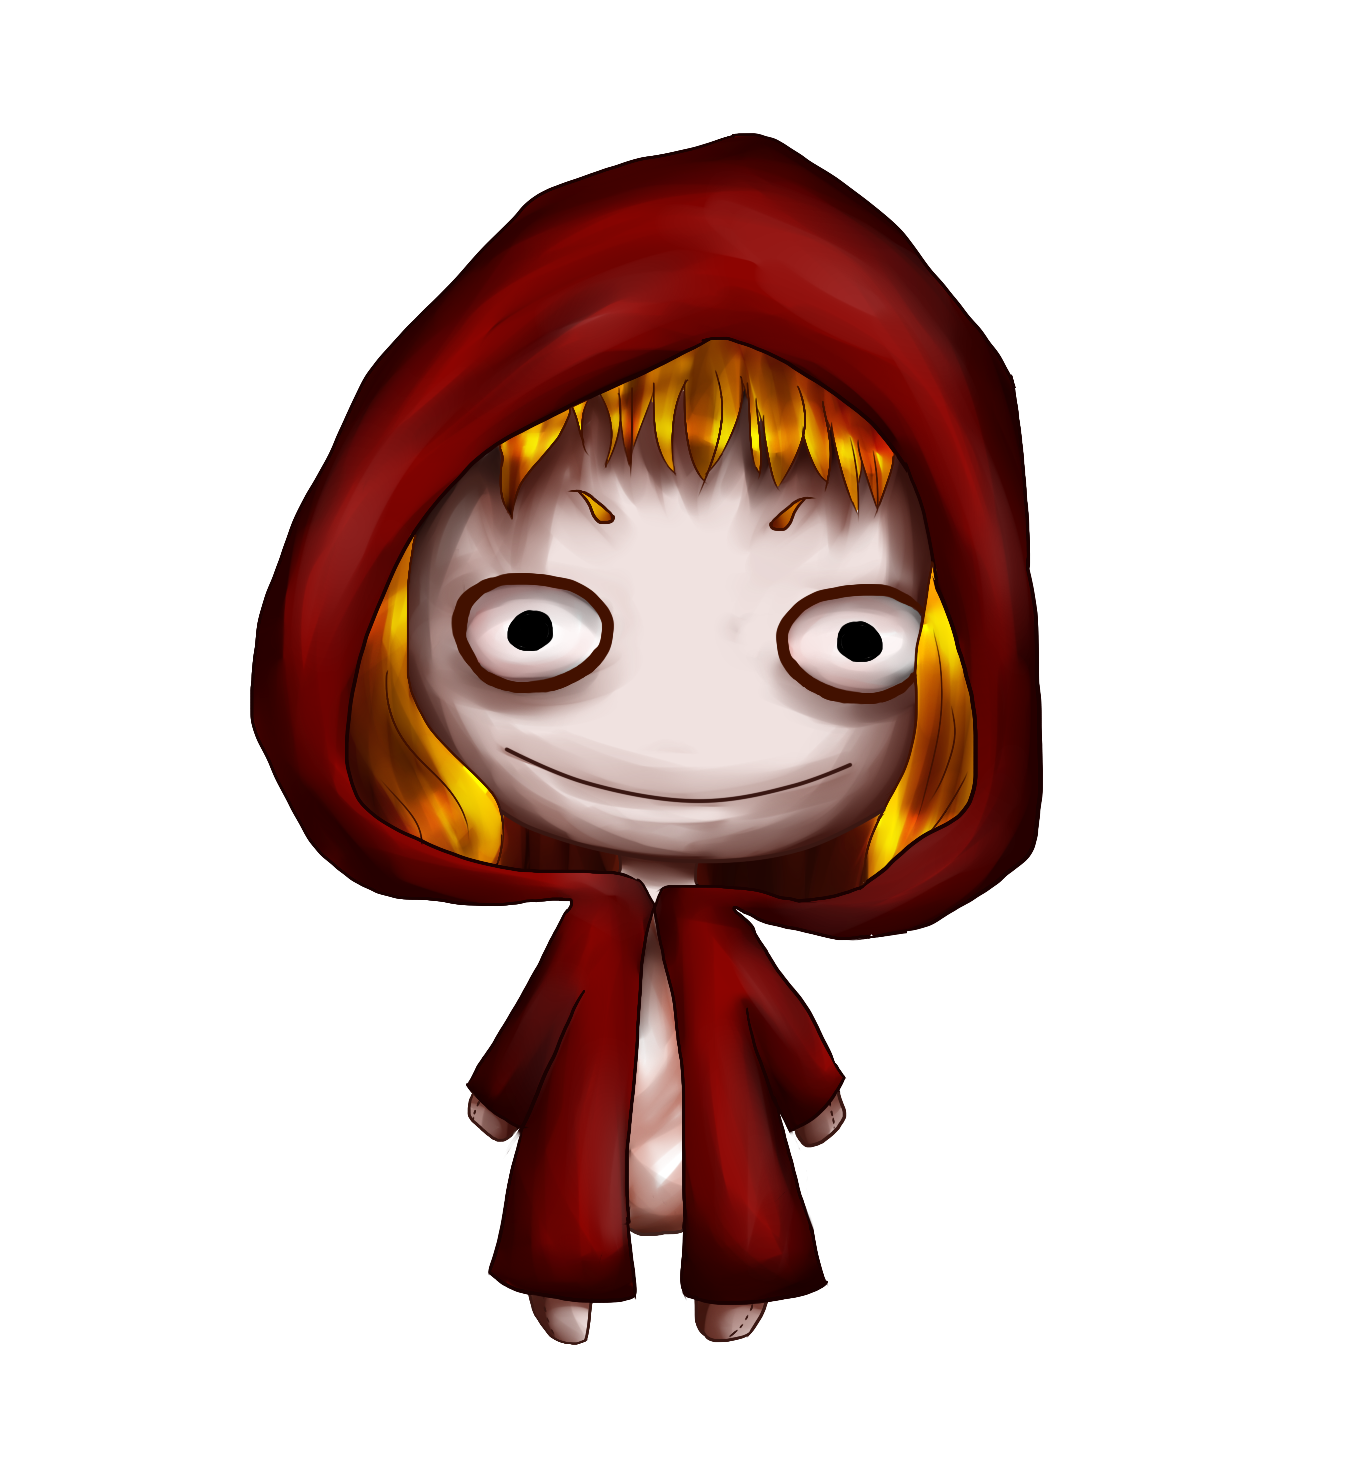 le petit chaperon rouge by pelirrojaas